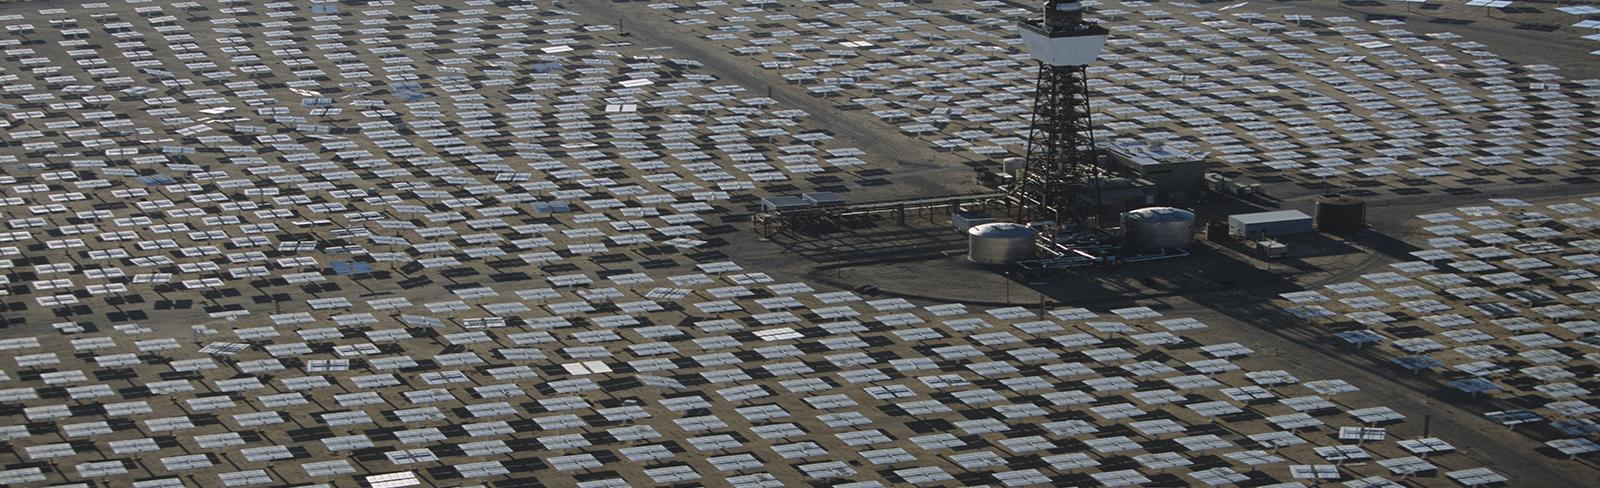 Concentrated Solar Power mirrors